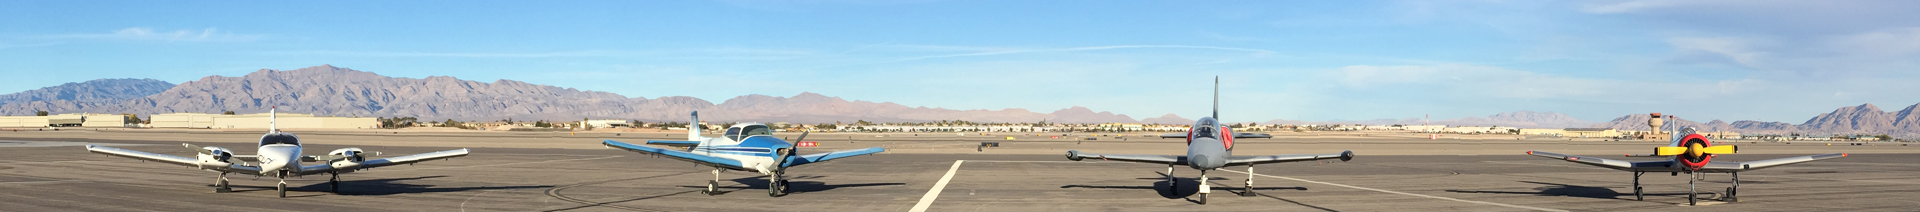 North Las Vegas Airport